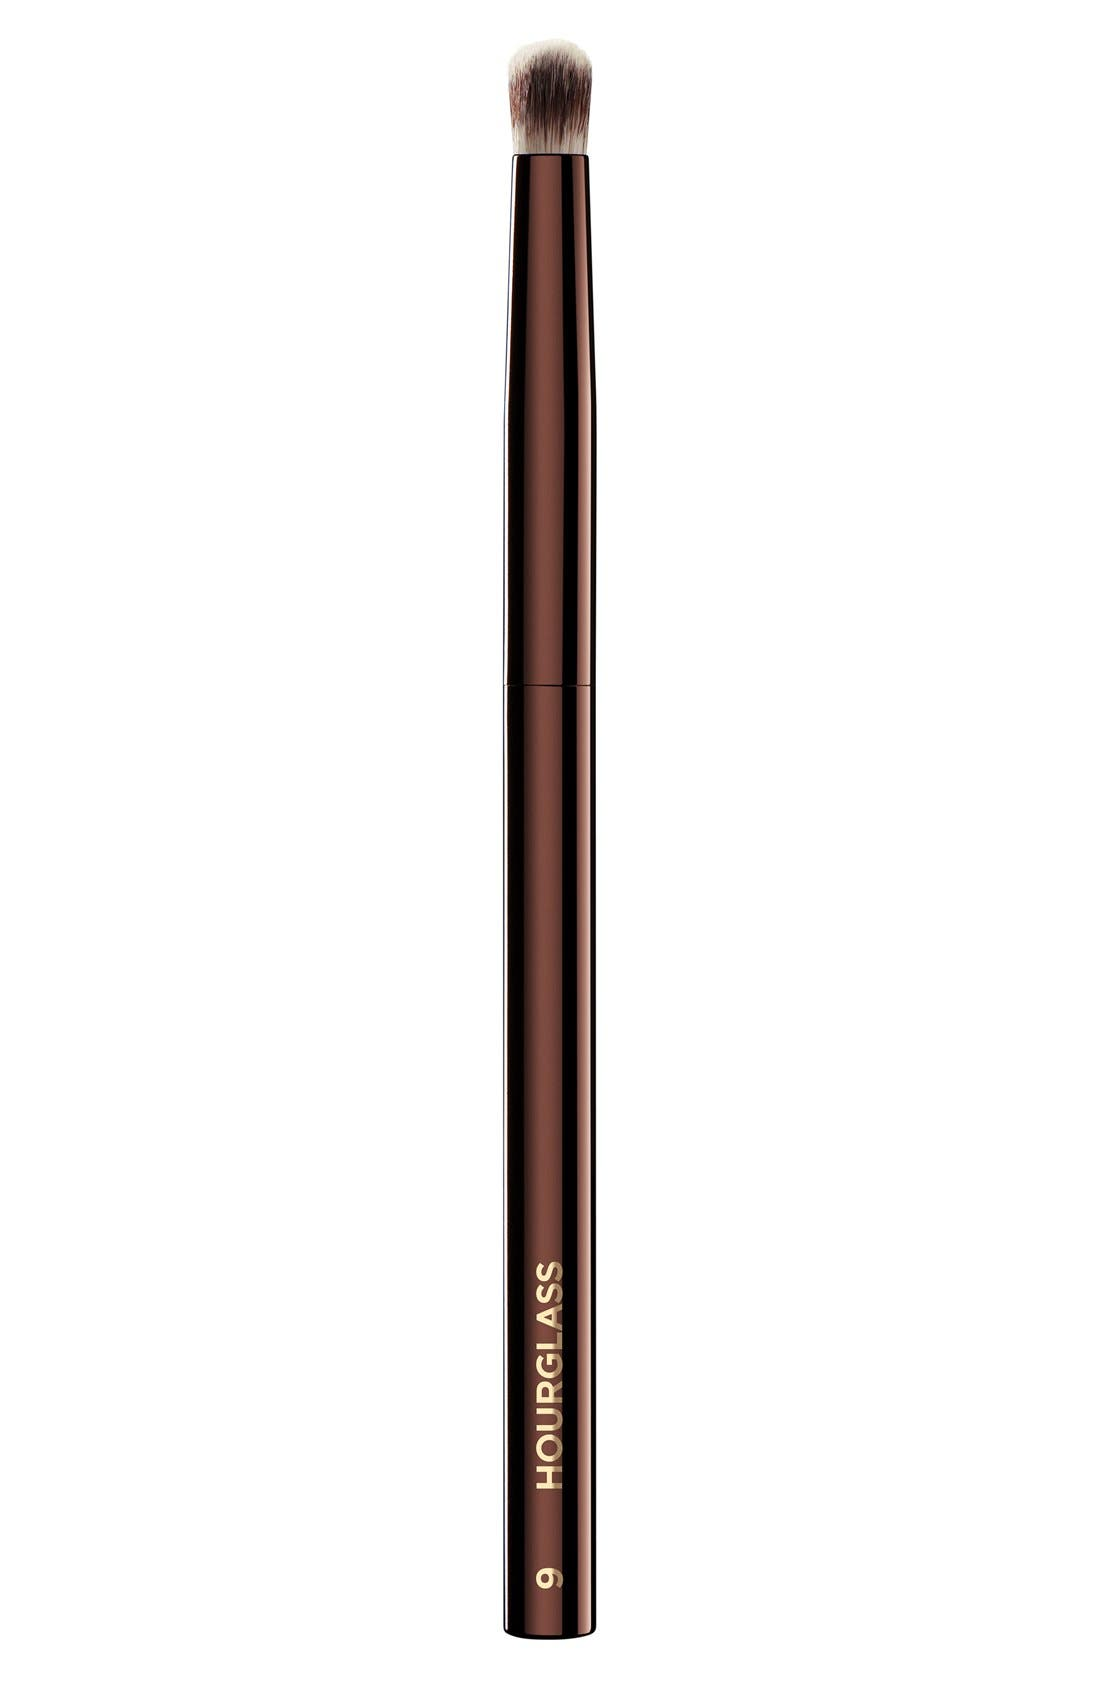 HOURGLASS No. 9 Domed Shadow Brush